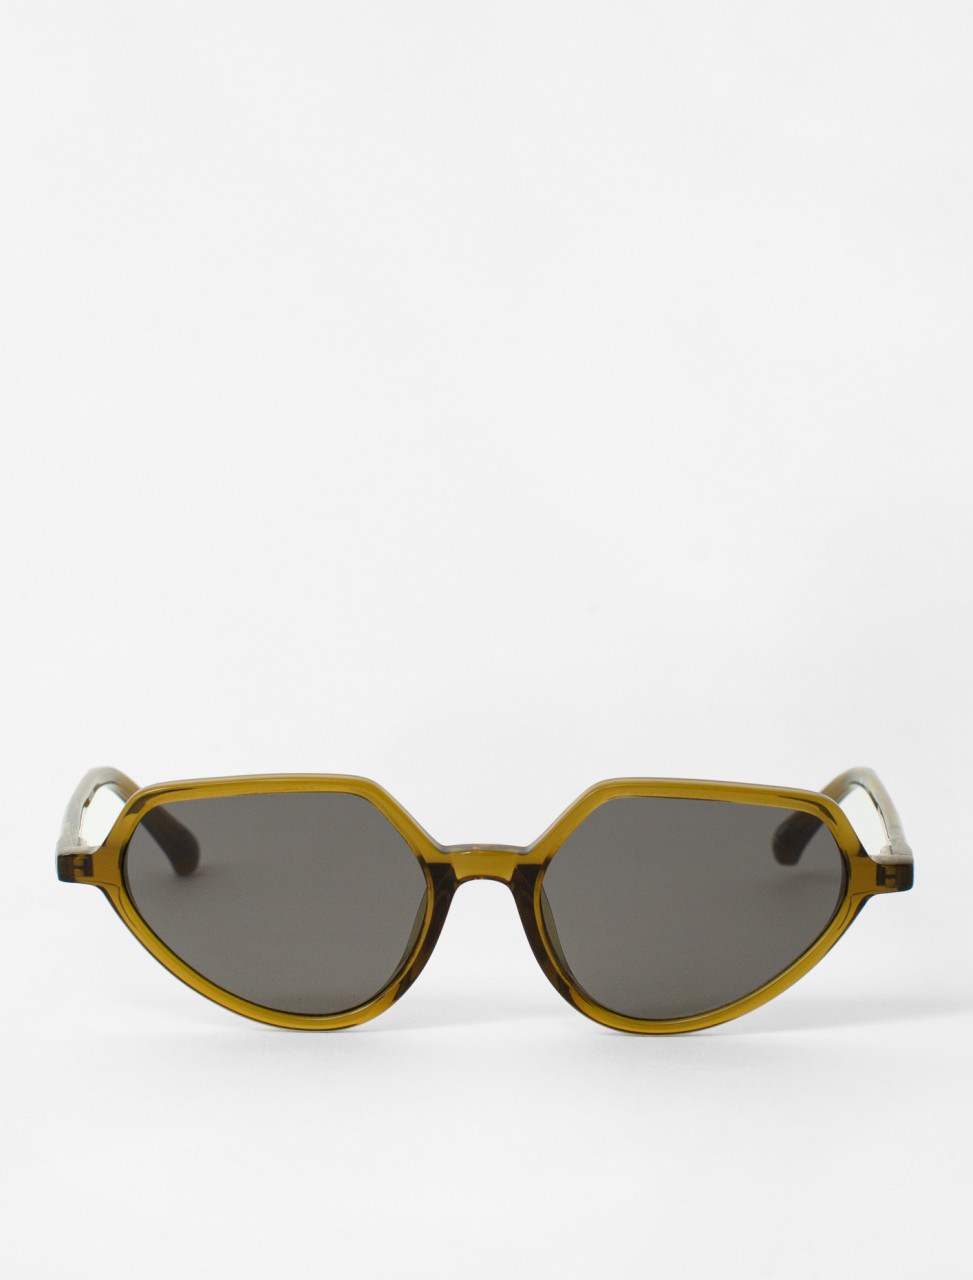 Cat-Eye Sunglasses in Olive Green